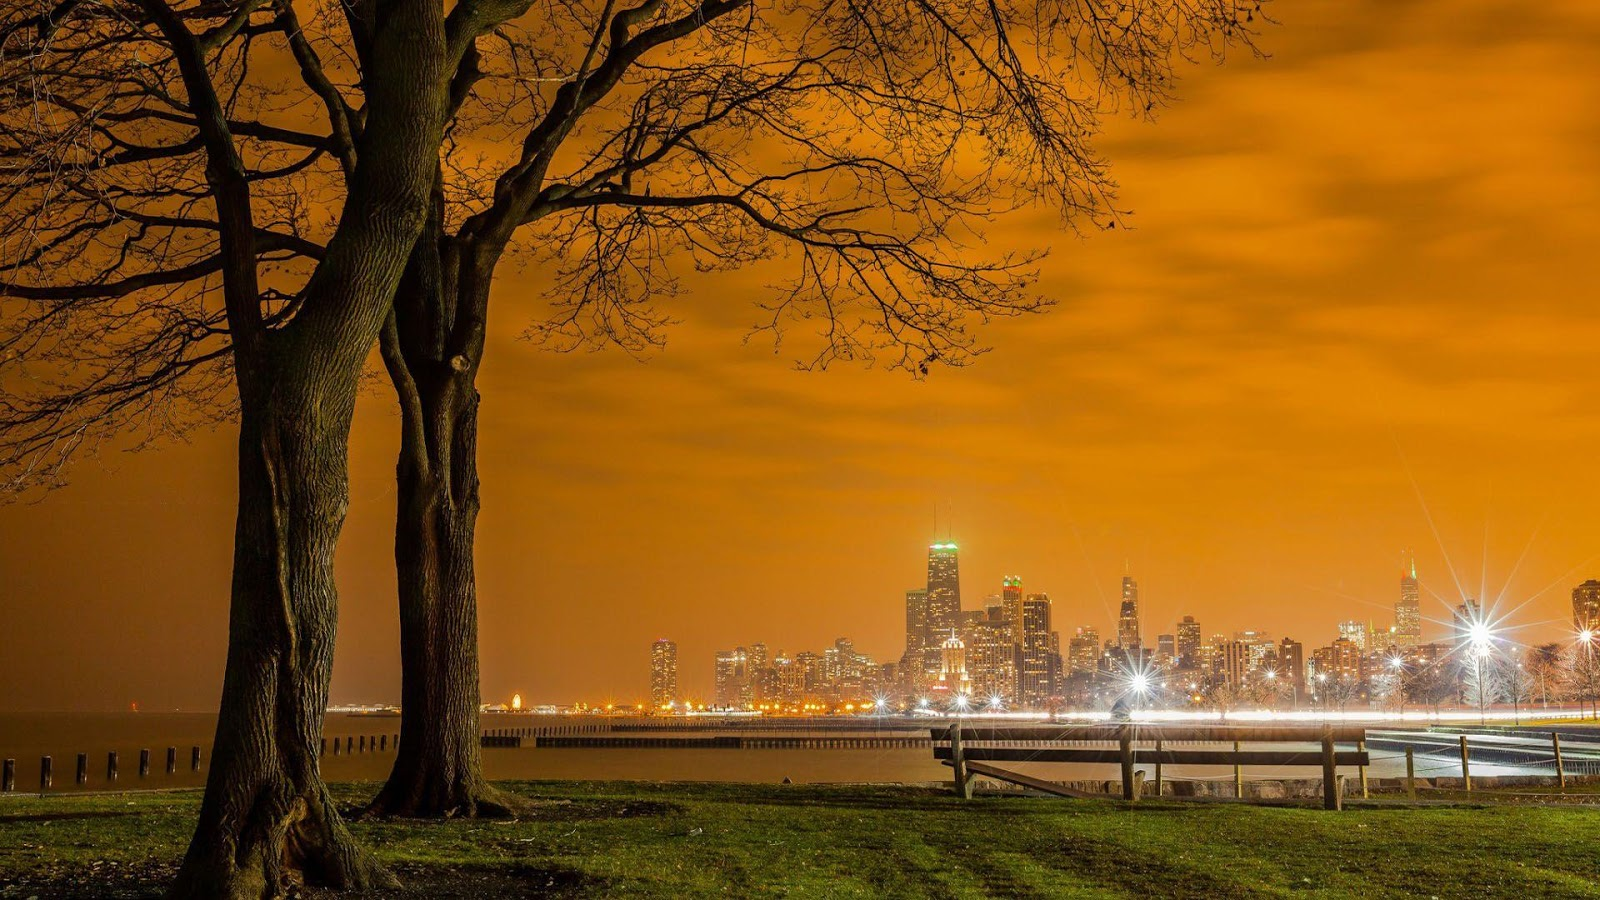 Best Chicago Wallpapers Android Apps On Google Play